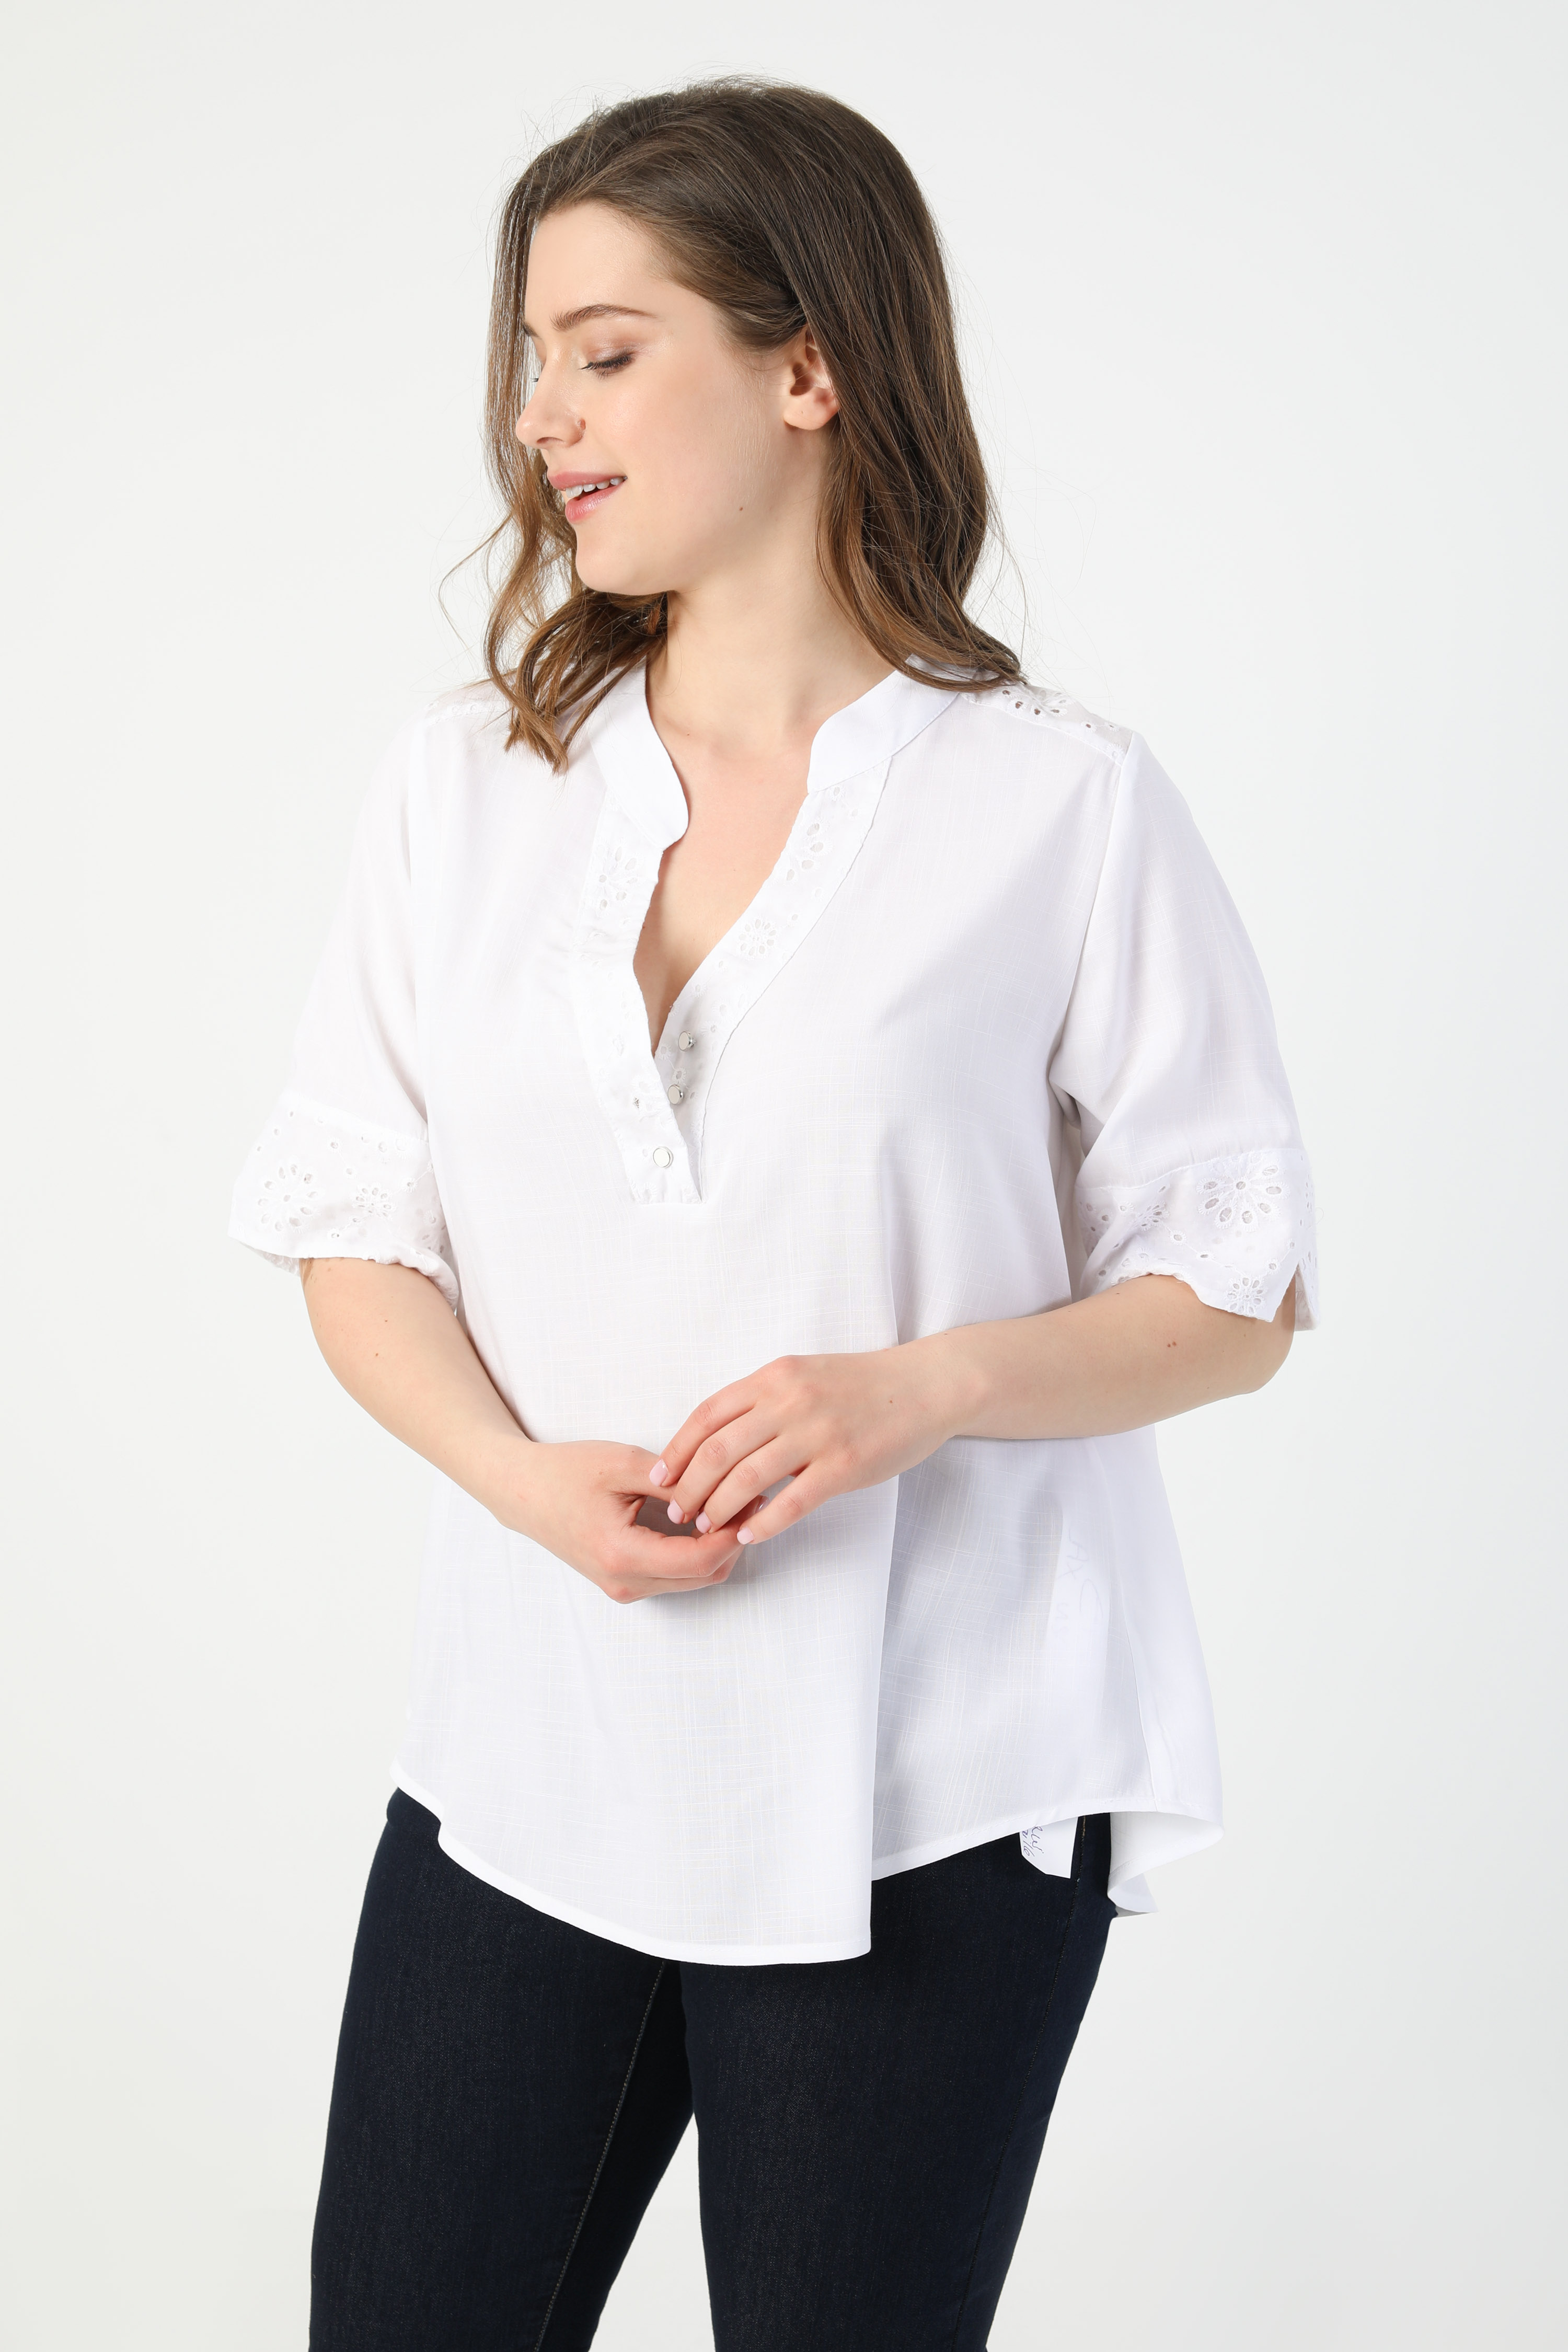 Blouse with eyelet embroidery (shipping May 5/10)